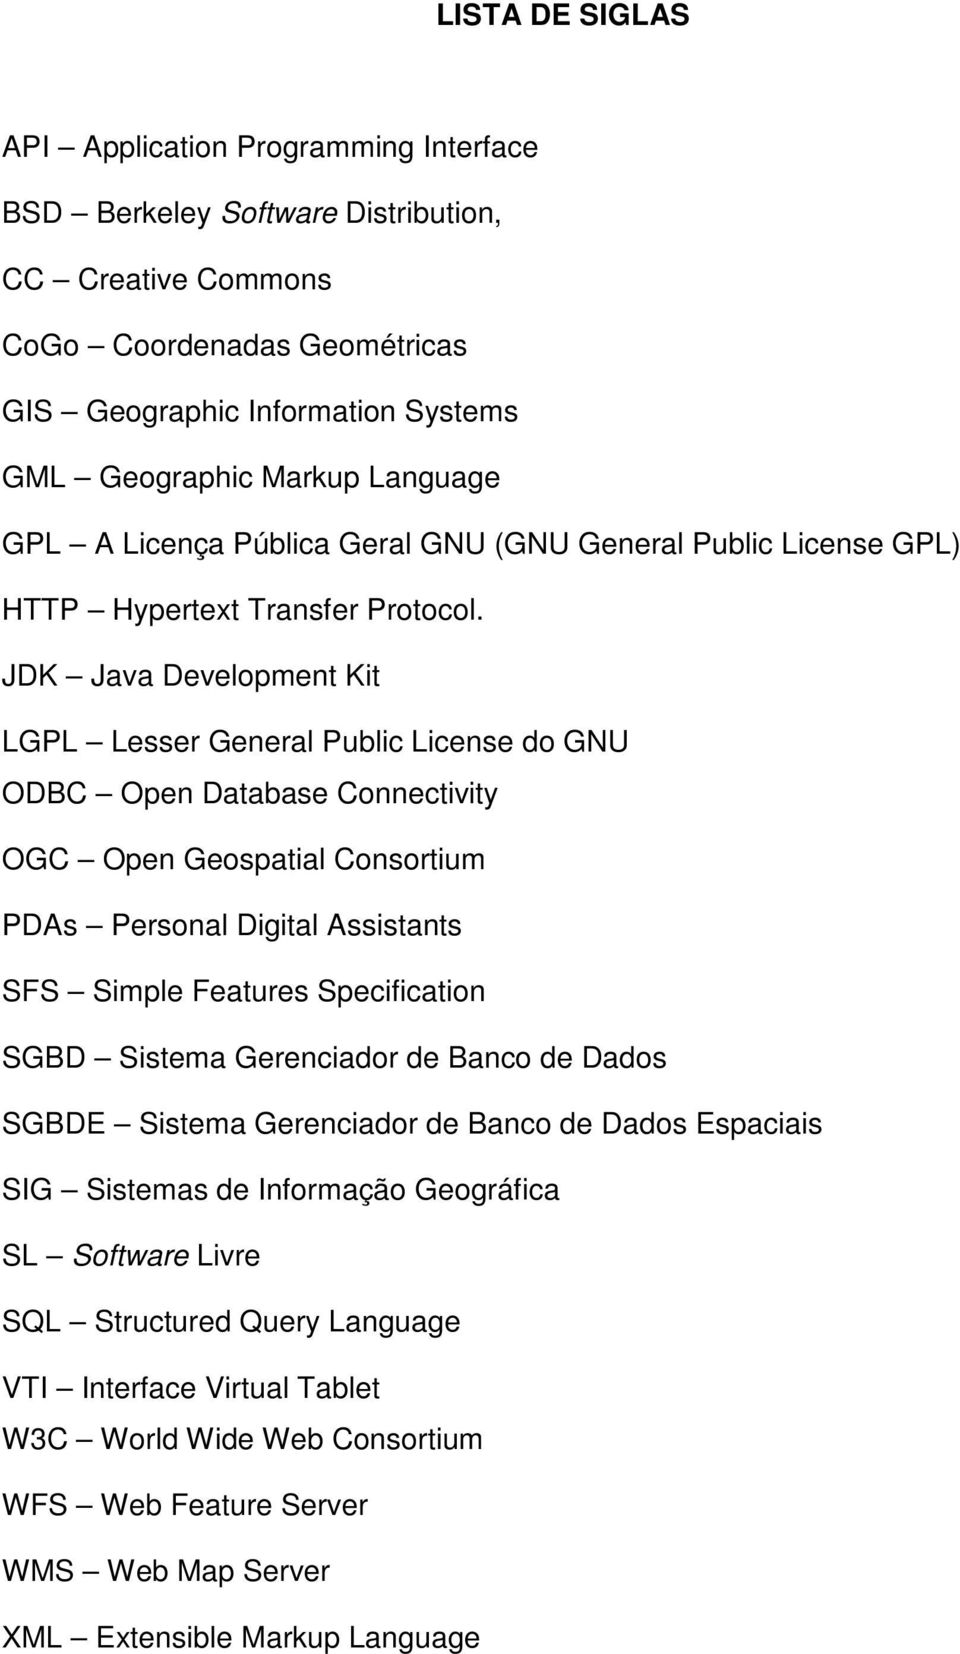 JDK Java Development Kit LGPL Lesser General Public License do GNU ODBC Open Database Connectivity OGC Open Geospatial Consortium PDAs Personal Digital Assistants SFS Simple Features Specification